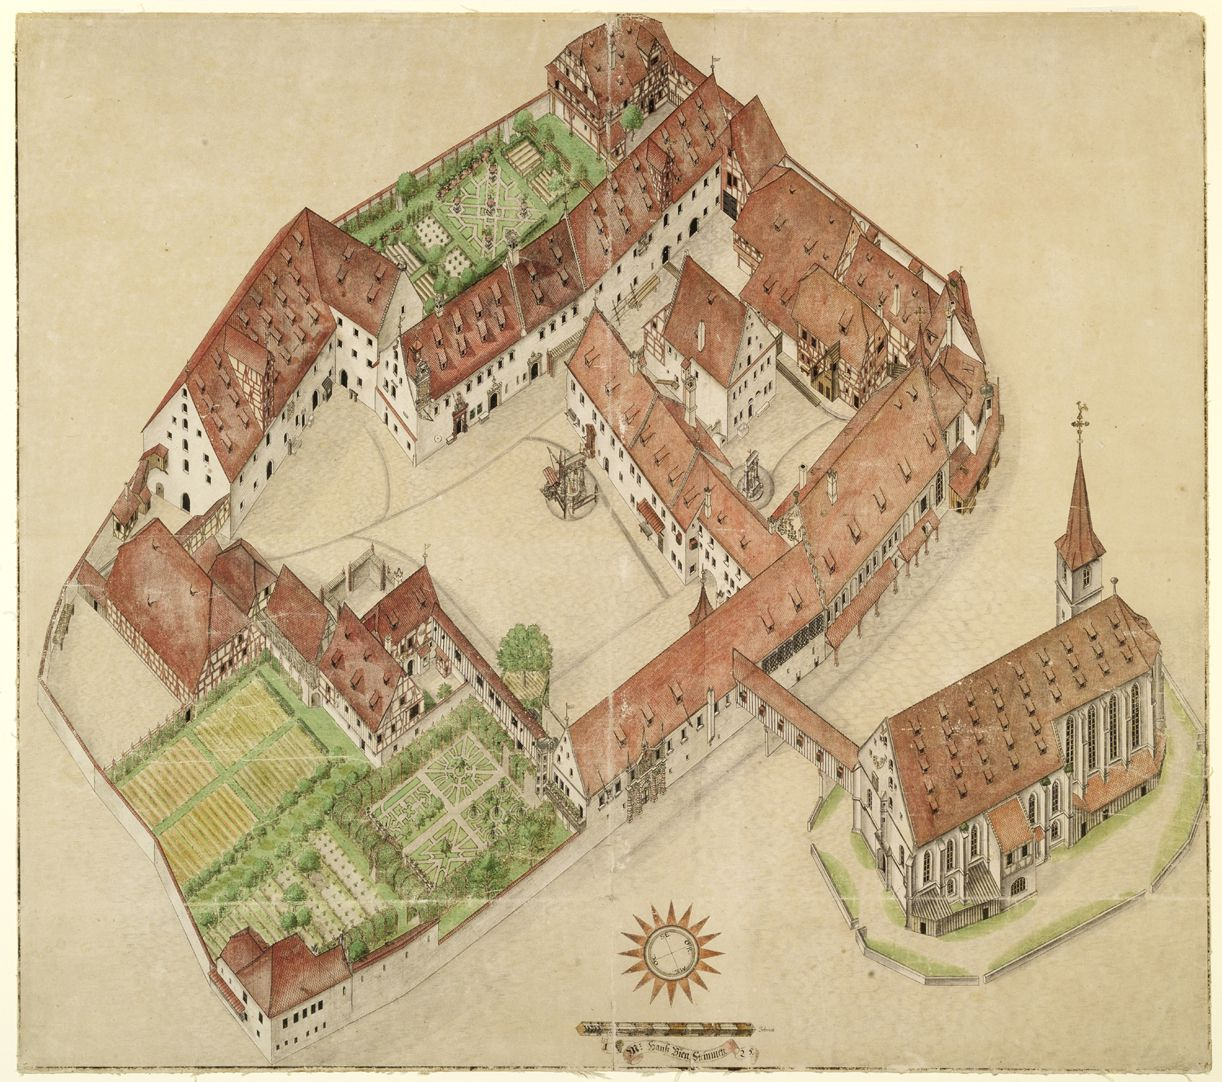 Isometric sketch of the German House in Nuremberg from the bird´s eye as seen from the south/west General view. This is the most exact inventory of an architectural complex that has been delivered to posterity so far